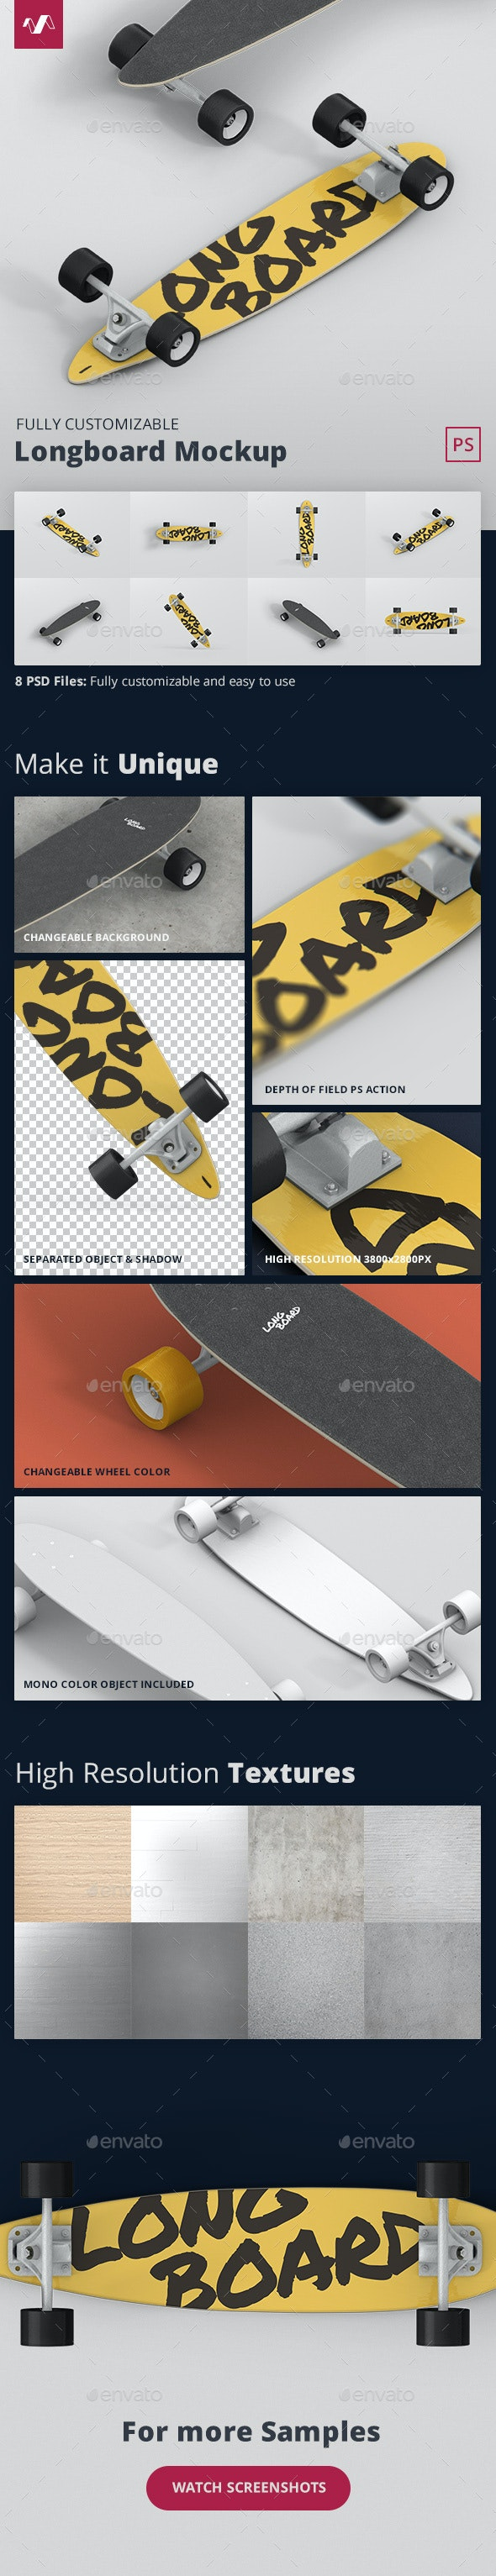 Skateboard Longboard Mockup - Miscellaneous Product Mock-Ups